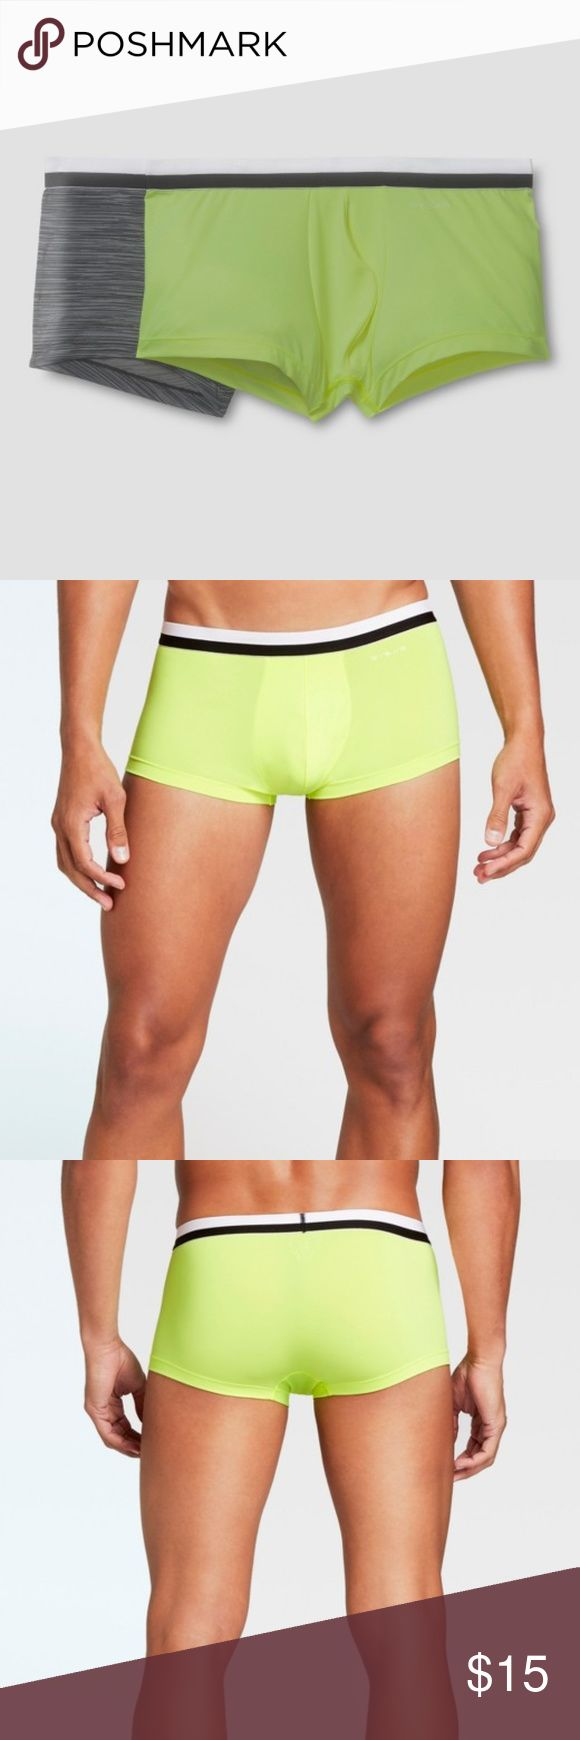 NEW Evolve by 2(X)ist Men's Micro Sliq Trunk [C7] Evolve by 2(X)ist Men's Micro Sliq Trunk - Neon/Black  The Evolve by 2(X)IST Sliq Trunks add a twist to a timeless style in Neon and Spacer Print. The ultra-low rise trunks with shorter, squared-off legs, minimal seams, and a boosting Contour Pouch are perfect to take from day to night.  available in size S | M new without tags color: neon lime punch & spacer black  - Low rise - Elastic waistband - Contour Pouch for added support - Seamless…